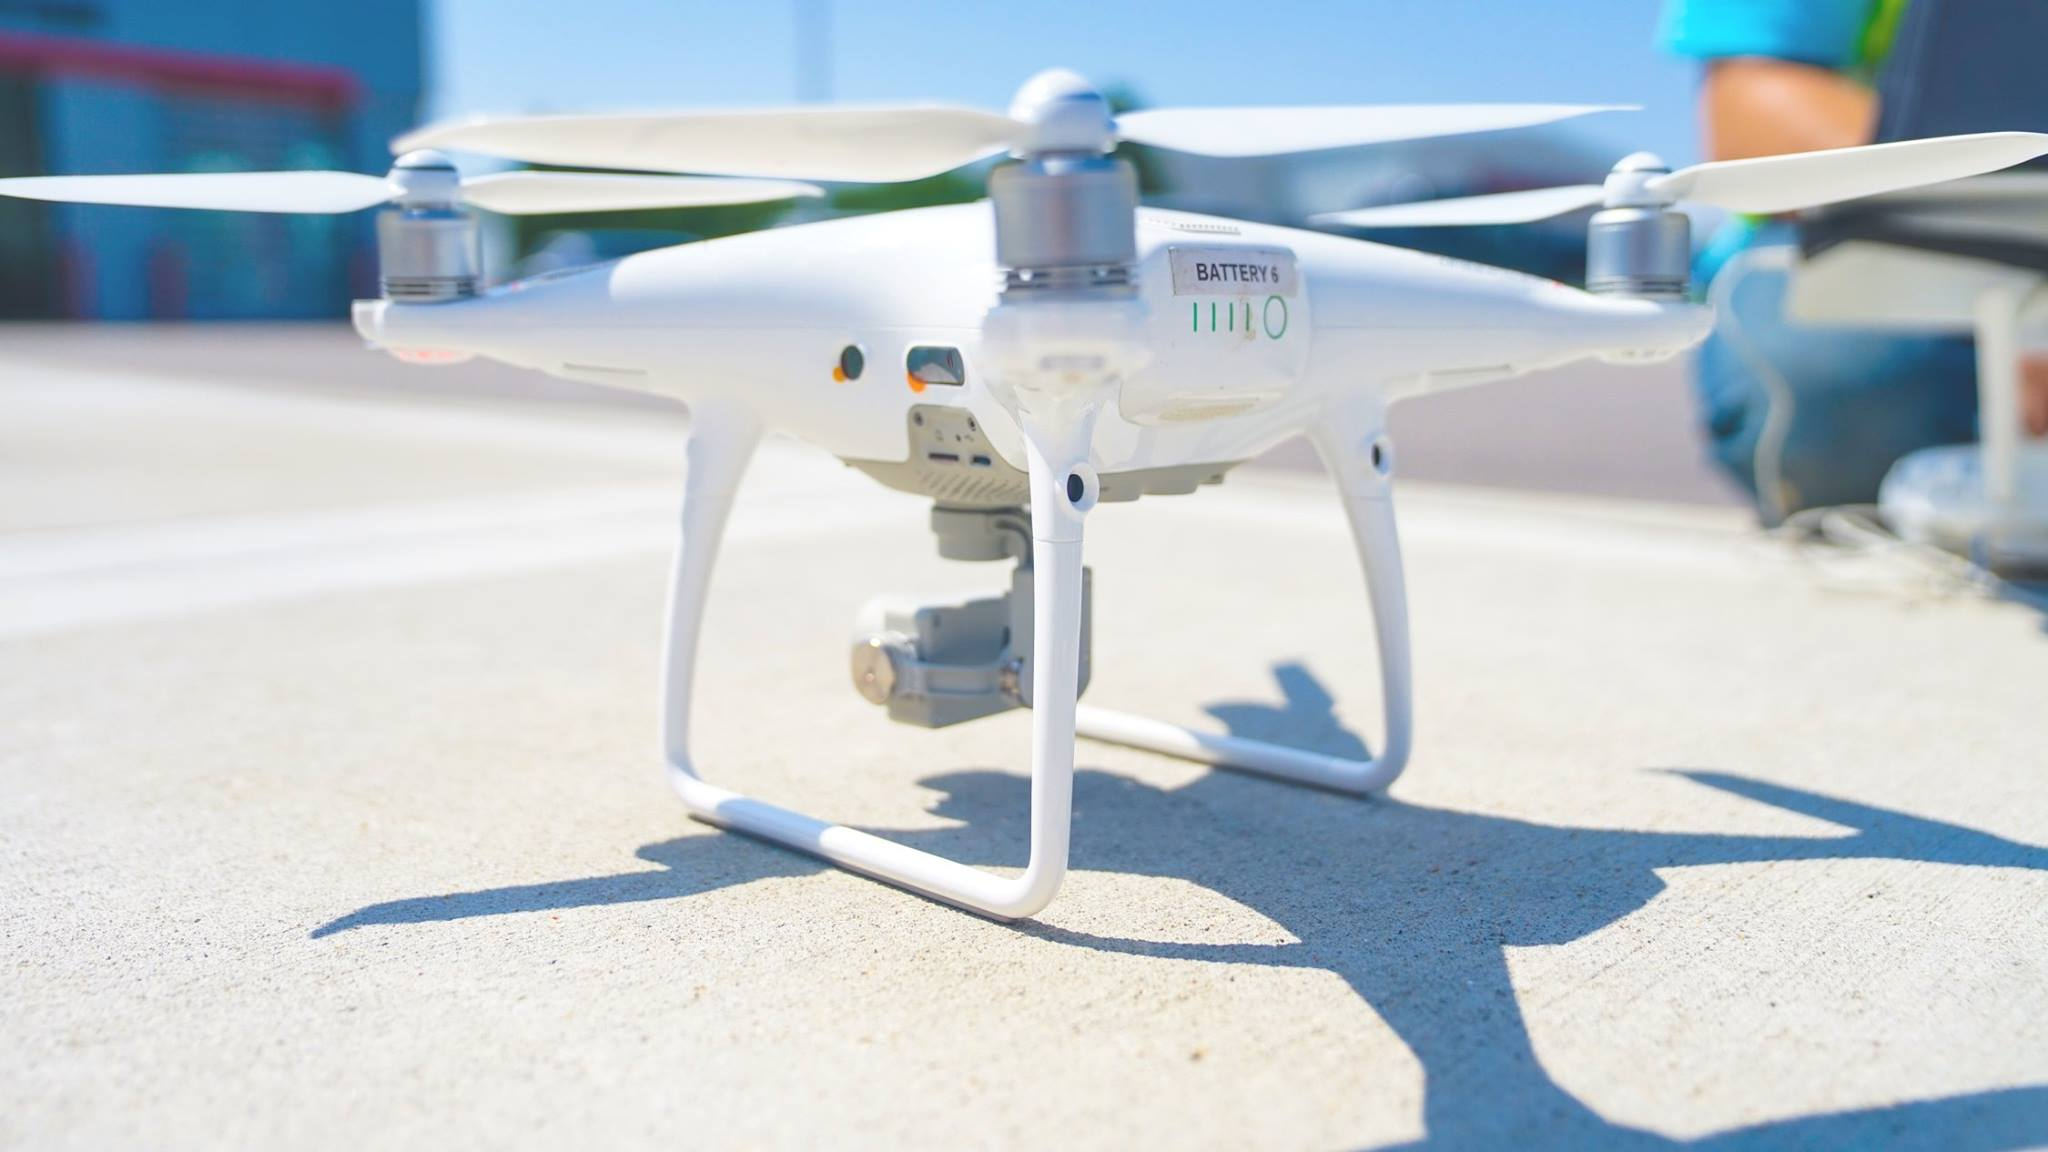 About US - We are an aerial filming company based in the Midwest (Iowa City, IA,) and work with producers and businesses nationwide. Filming services both traditional and aerial videography are available, including post production and/or video editing. Looking for great video footage gathered by a knowledgeable and experienced staff? If so contact us, and let us help create your vision.